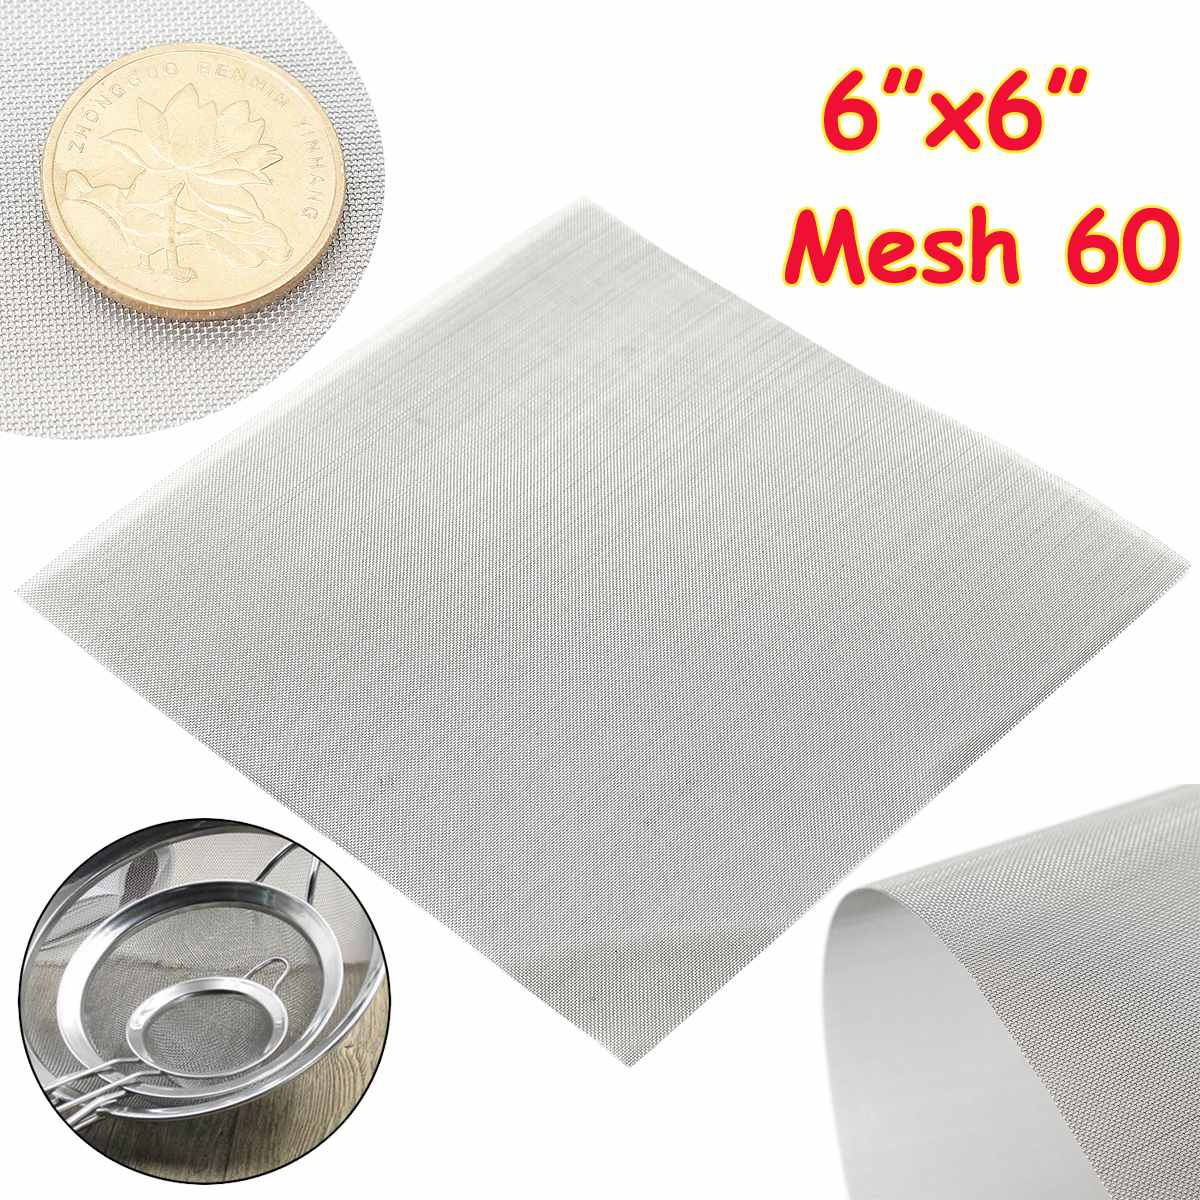 1pc 15x15cm 304 Stainless Steel Woven Wire High Quality Screening Filter Sheet 60 Mesh